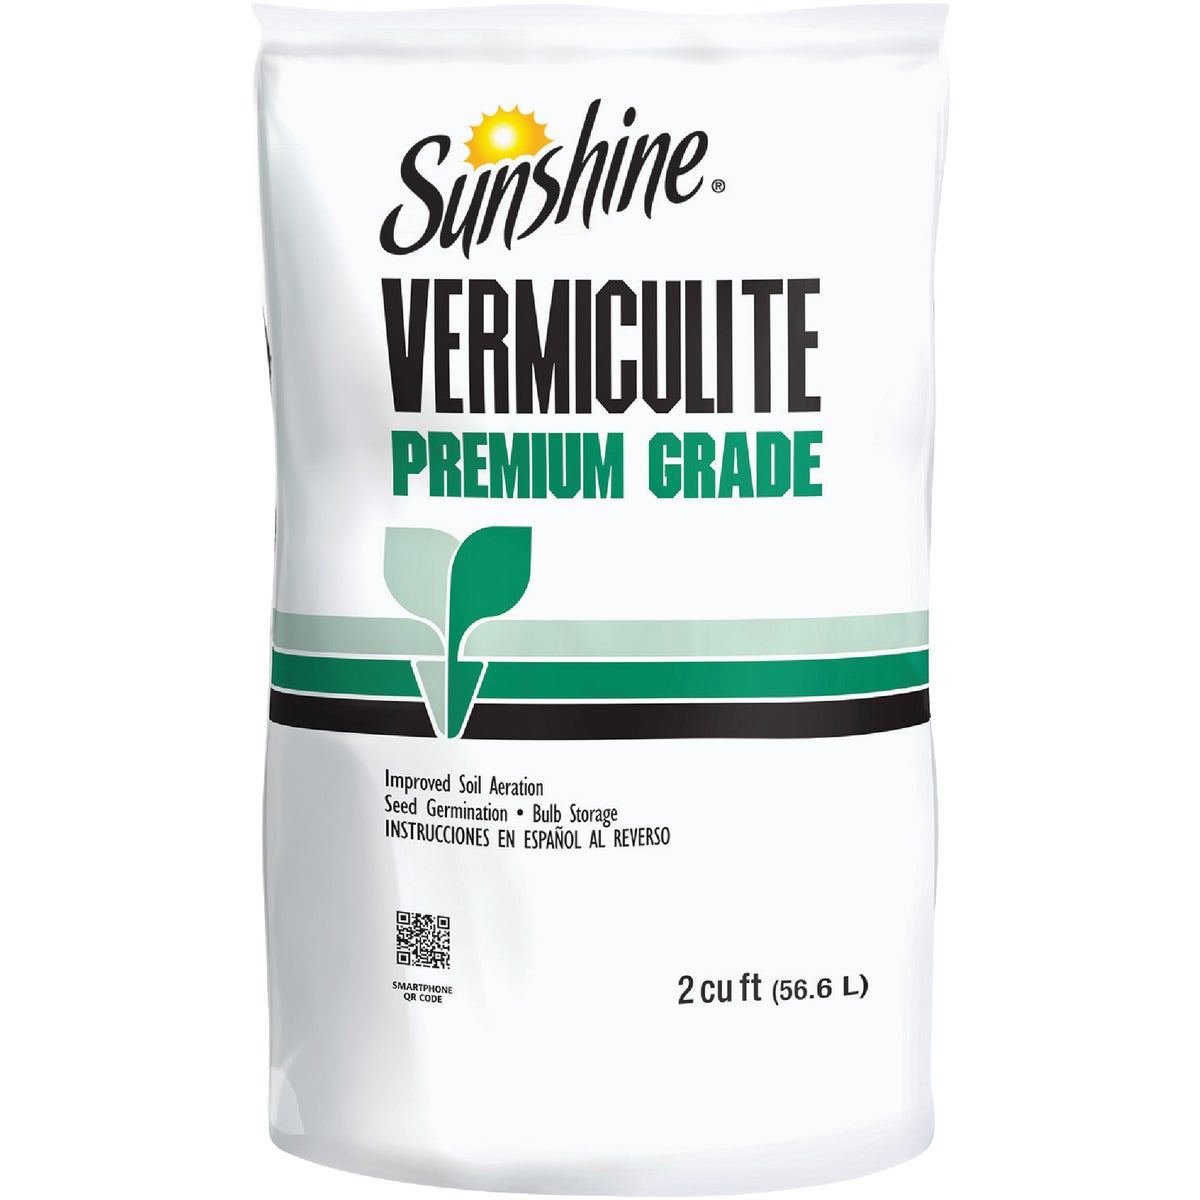 2CU FT VERMICULITE - 16045 by Good Earth Organics